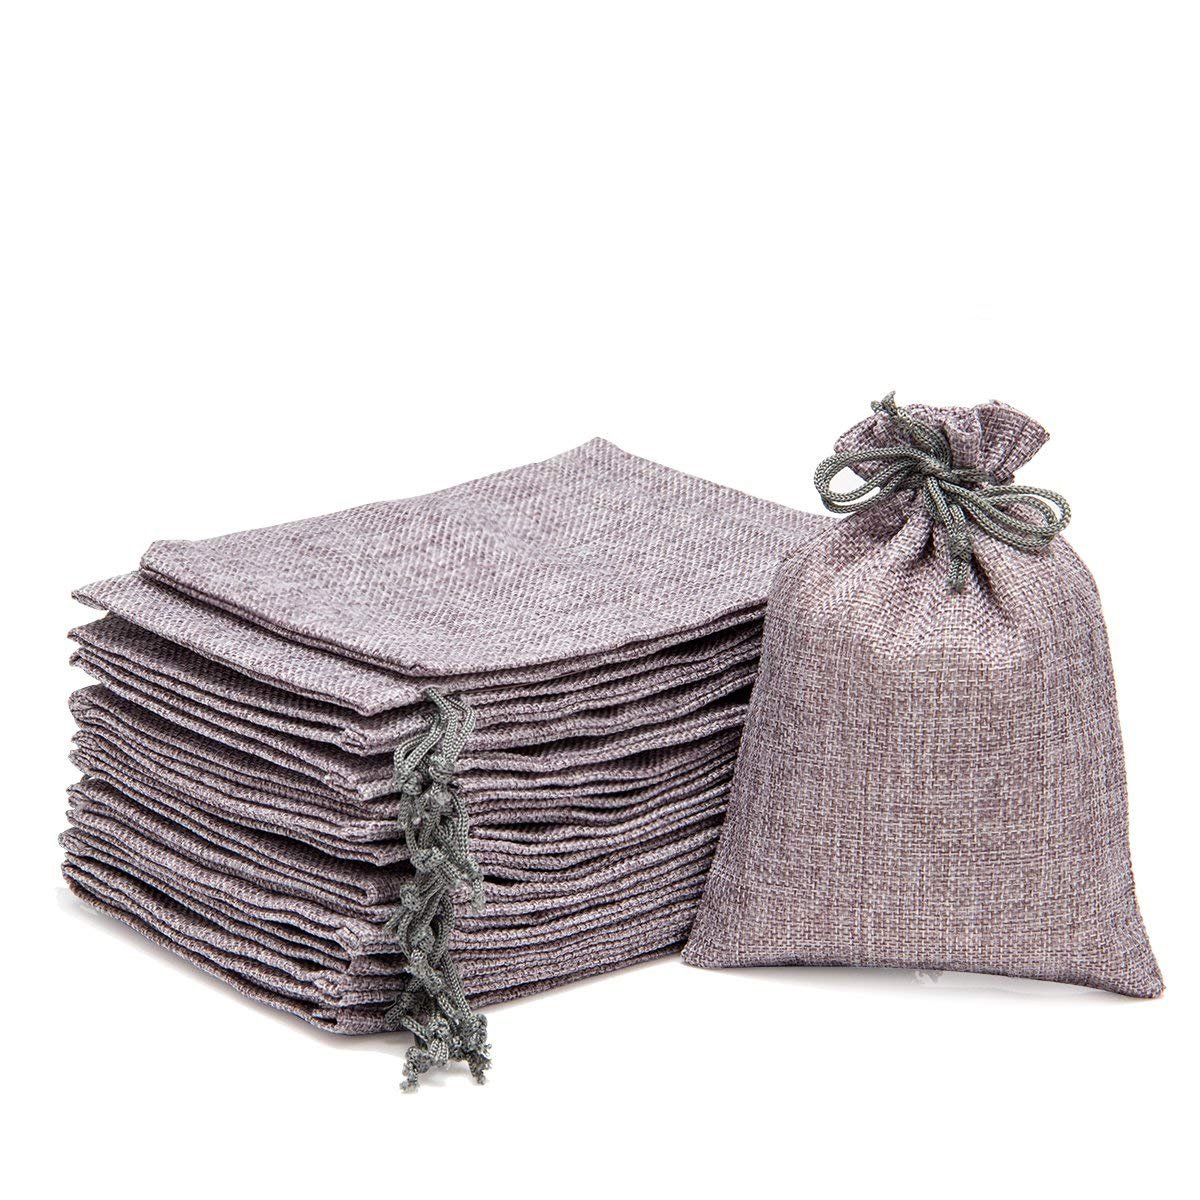 ANPHSIN 30 Packs Burlap Bag with Drawstring - 7.1'' x 4.9'' Gift Bag Jewelry Pouches Sacks for Wedding Favors, Party, DIY Craft and Christmas- Gray